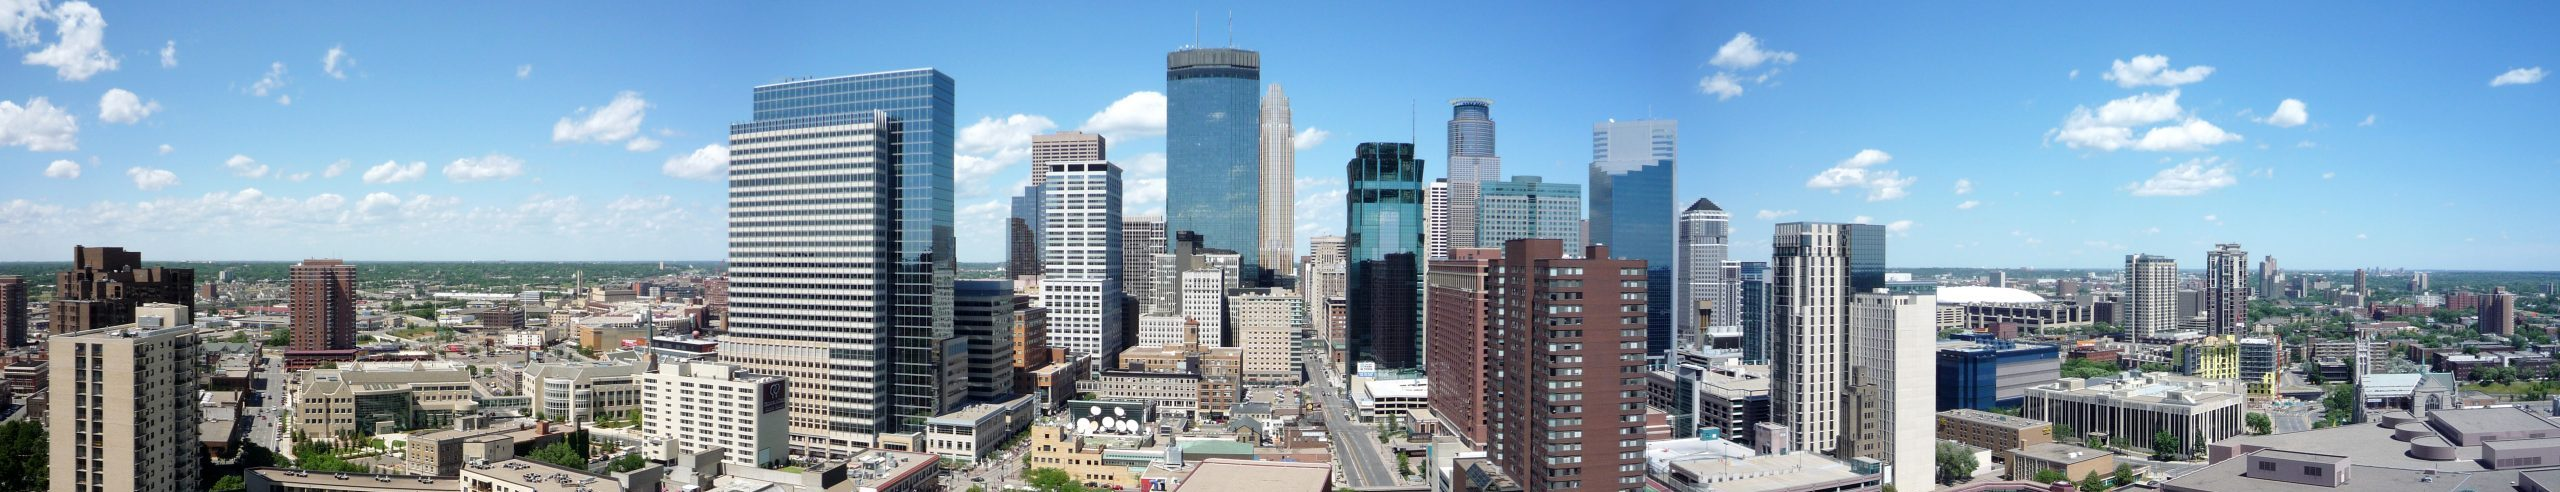 MPLS-panorama